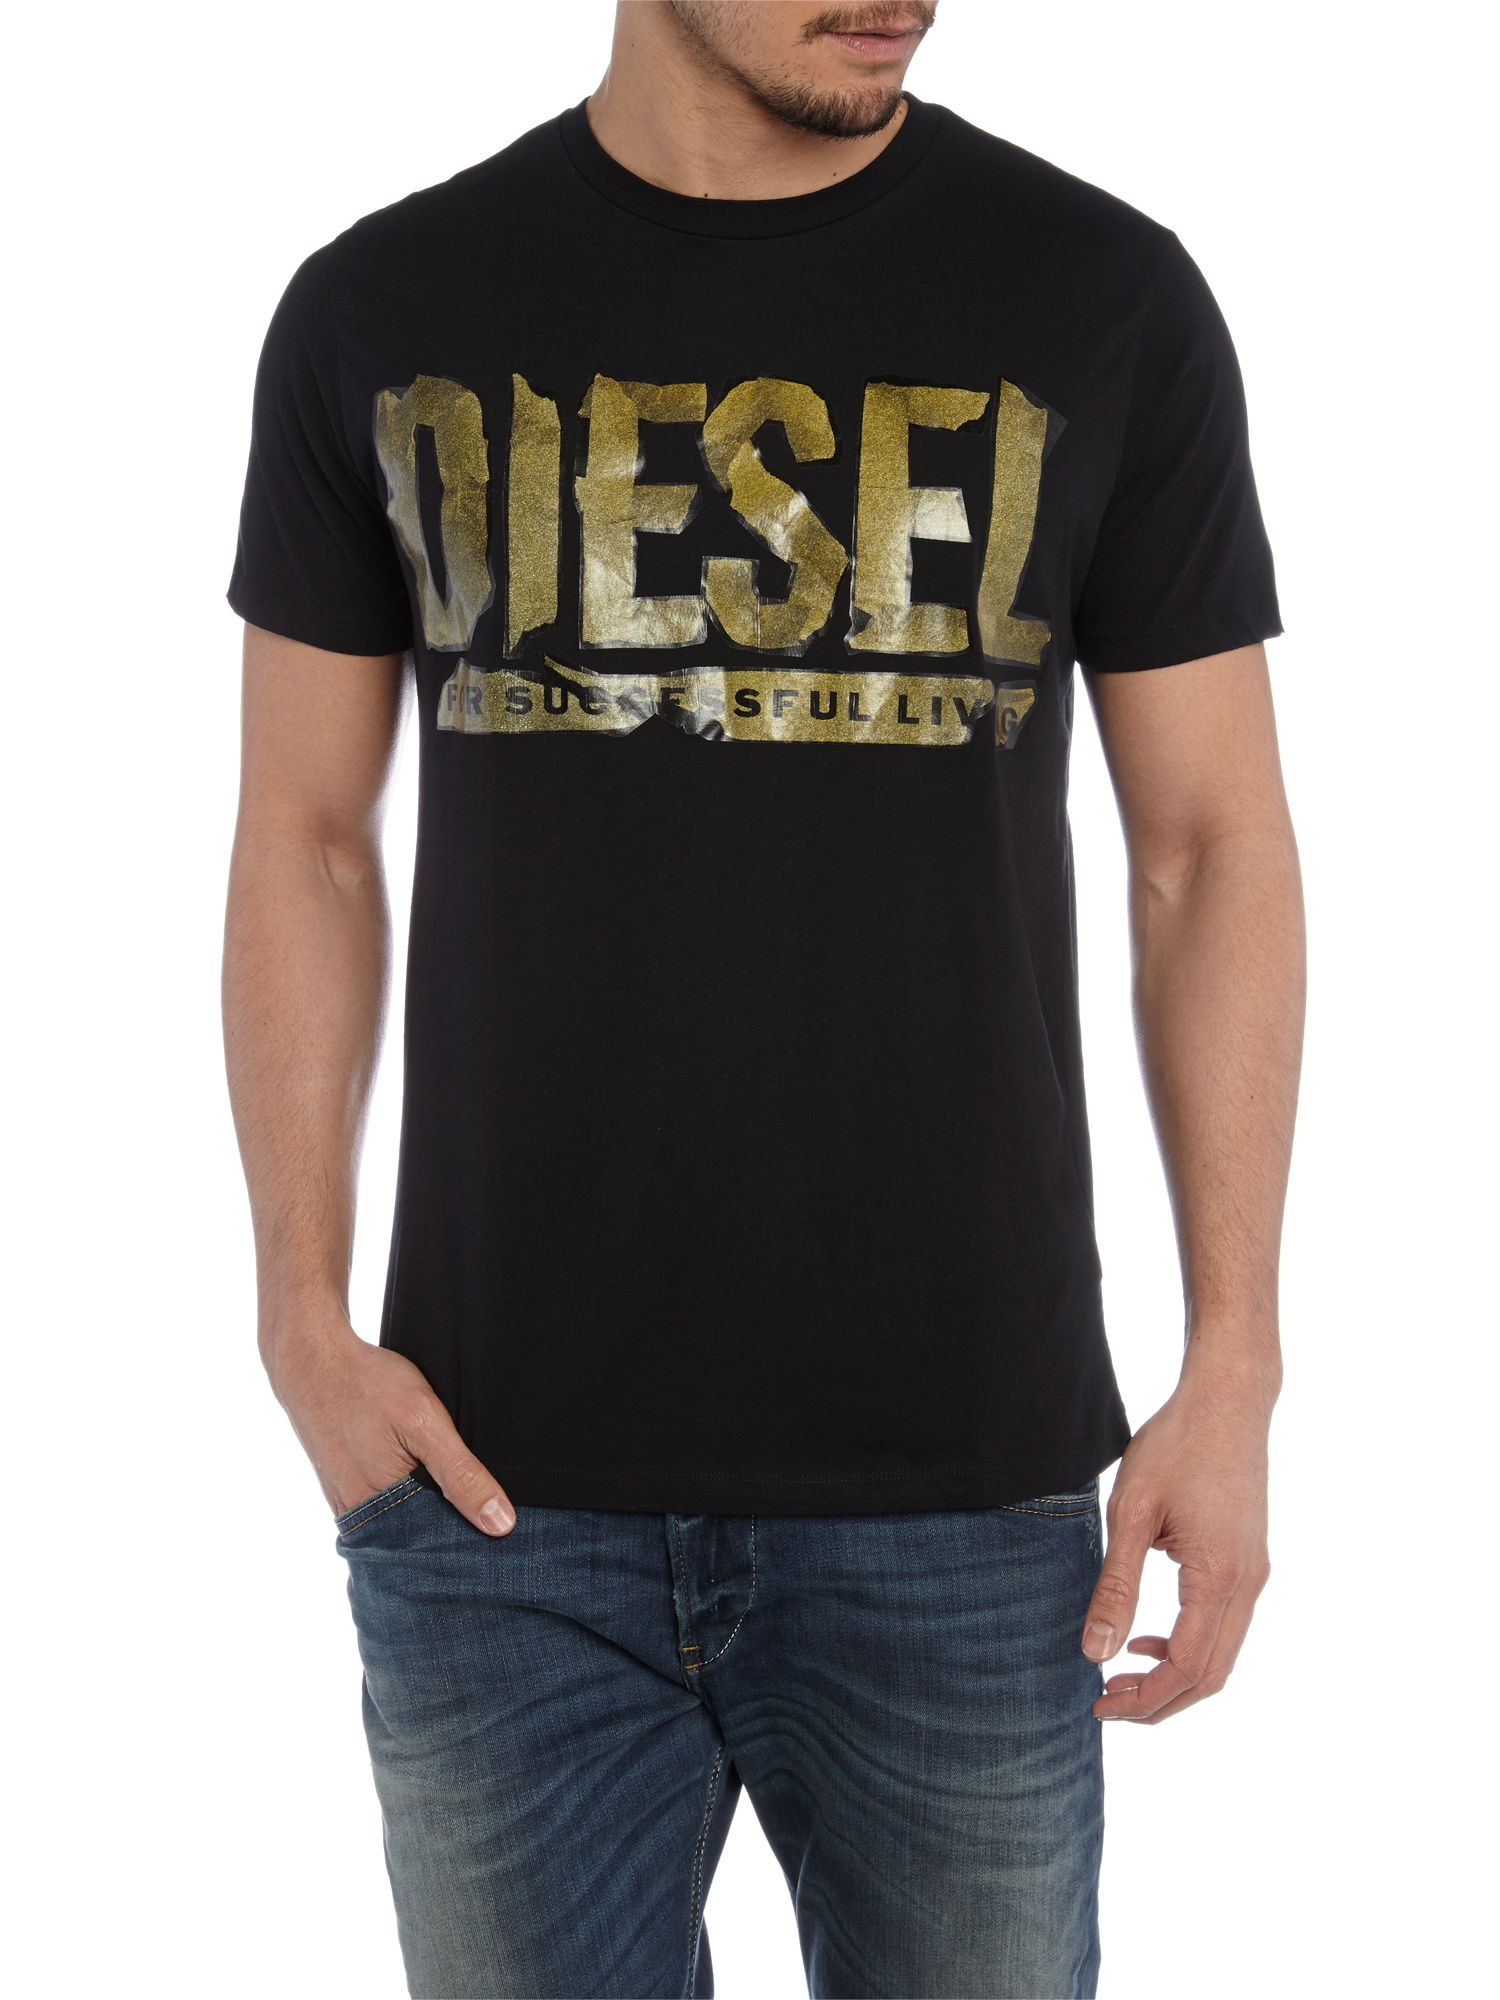 Tape diesel logo printed t shirt